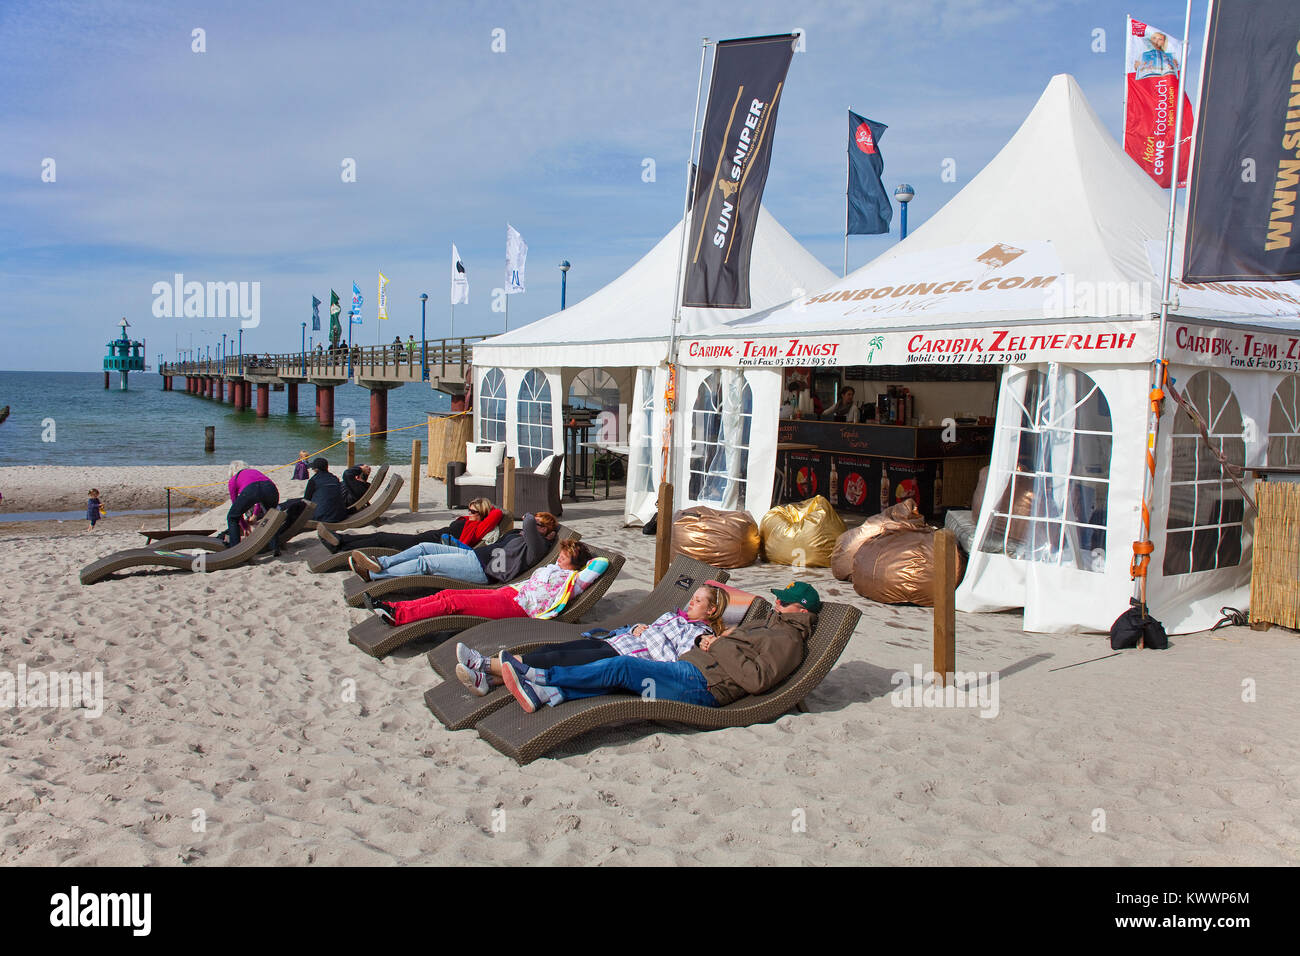 People relaxiing at the beach, pier of Zingst, Fishland, Mecklenburg-Western Pomerania, Baltic sea, Germany, Europe Stock Photo